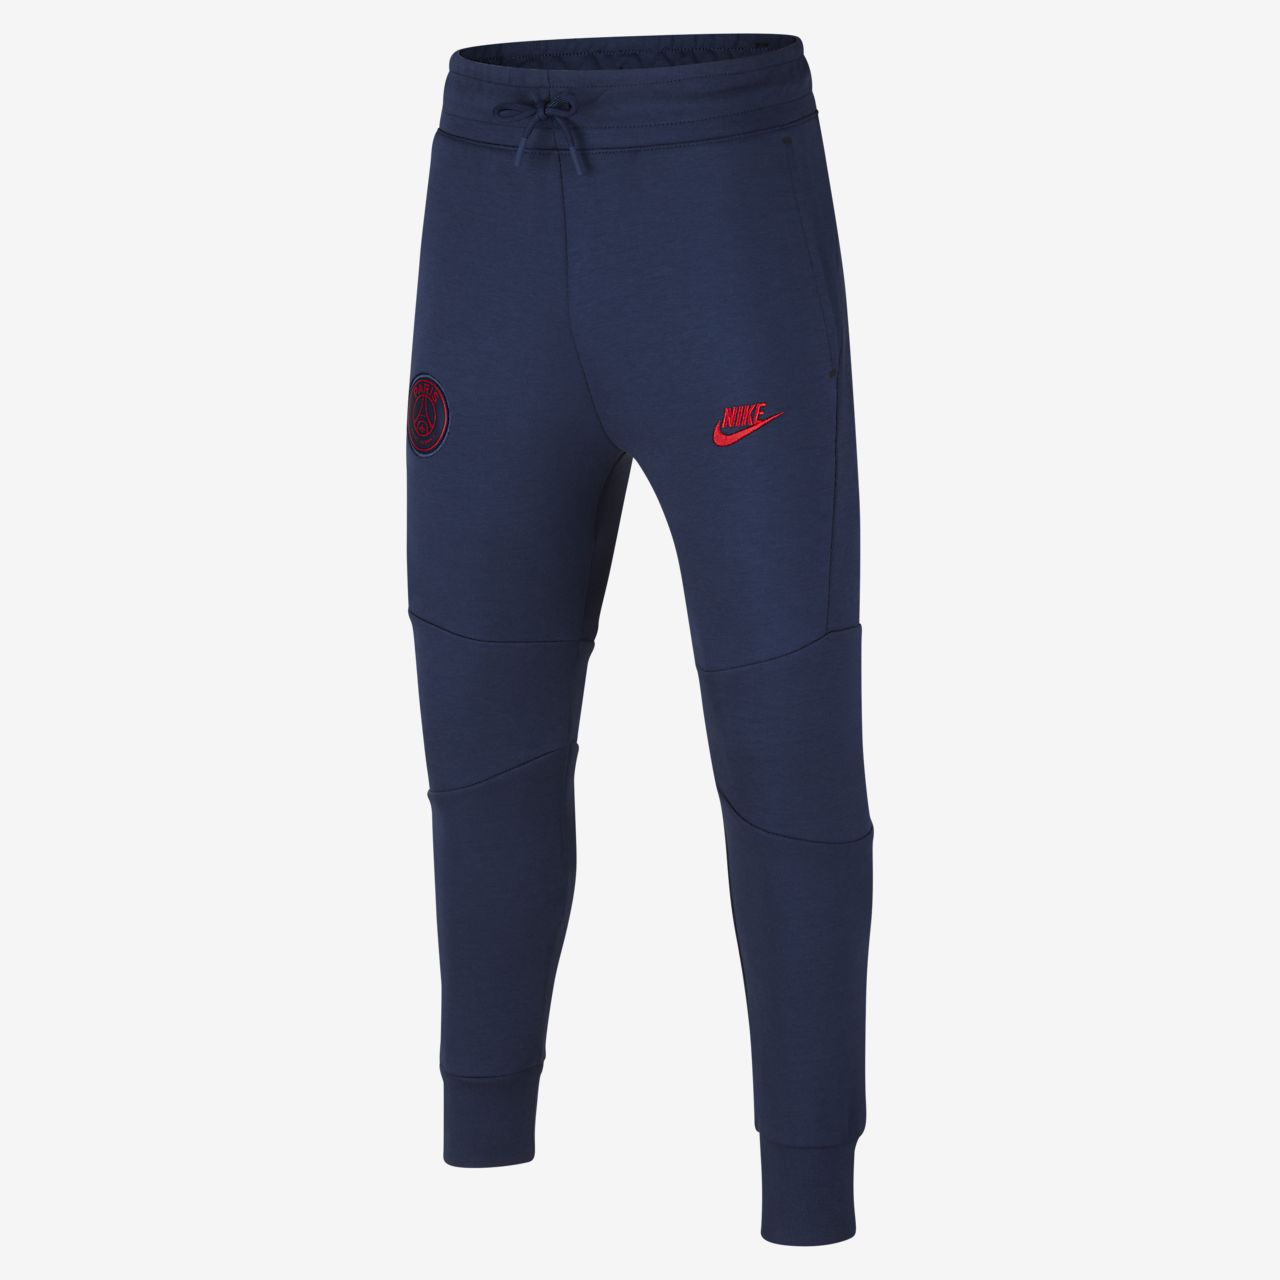 Paris Saint-Germain Tech Fleece Older Kids' Pants